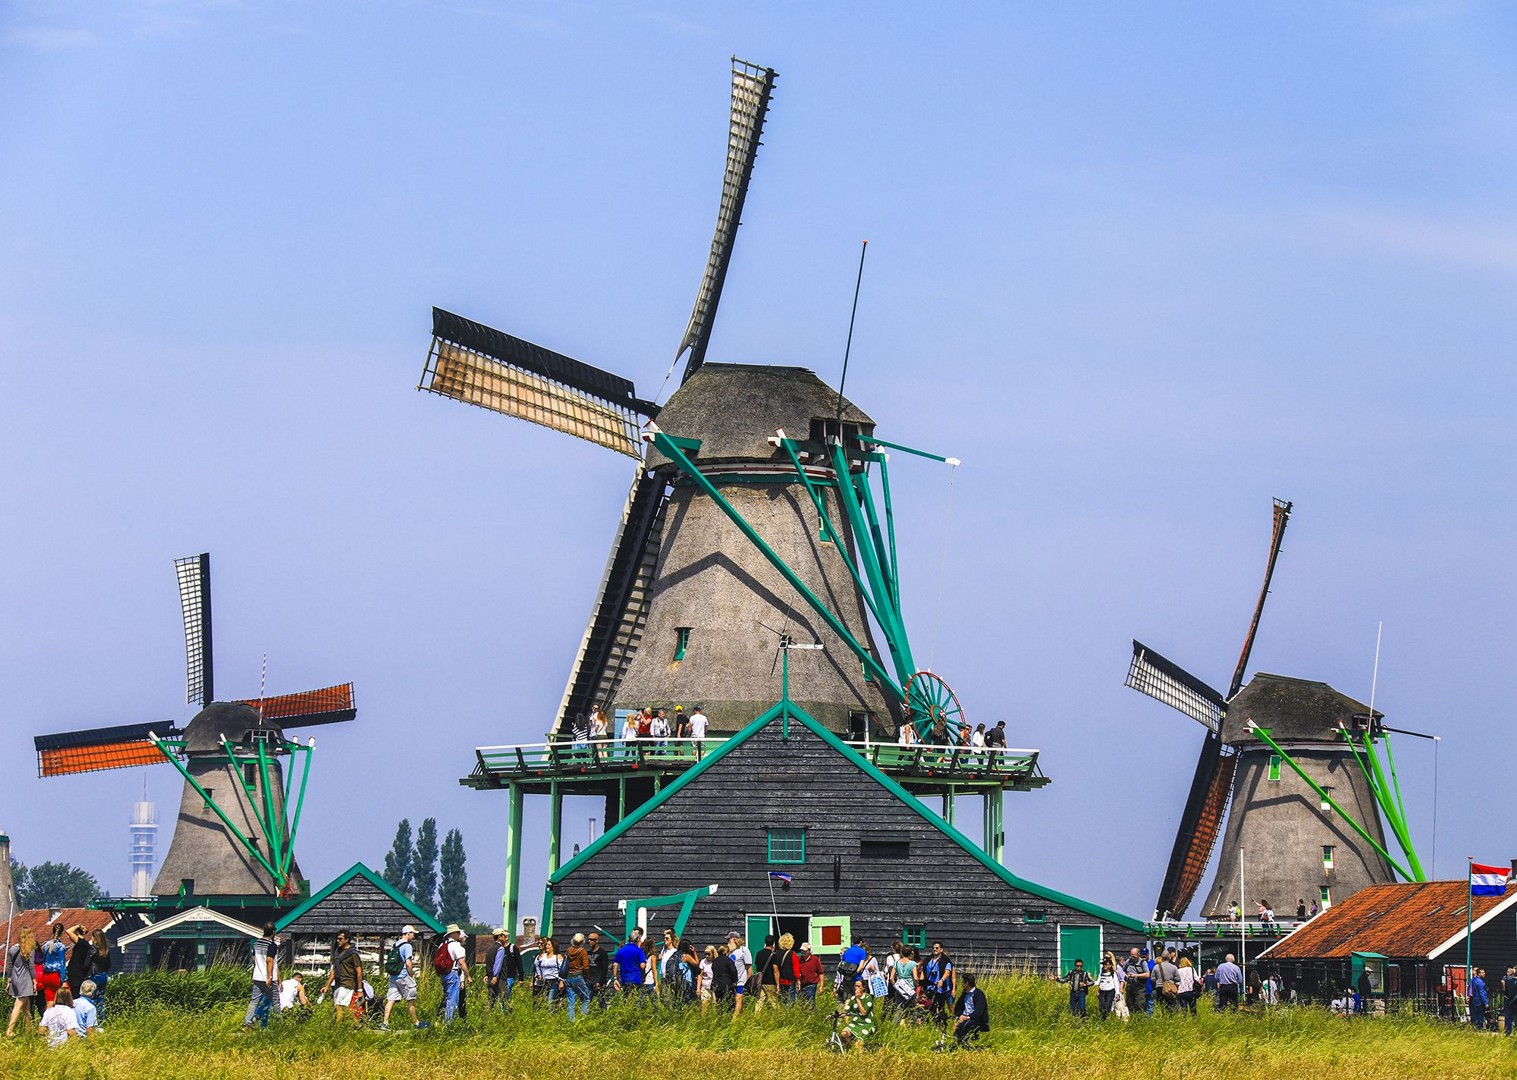 zaanse-schans-zaandam-holland-amsterdam-windmills-premium-bike-and-barge.jpg - Holland and Belgium - Amsterdam to Bruges - Premium Bike and Barge Holiday - Leisure Cycling